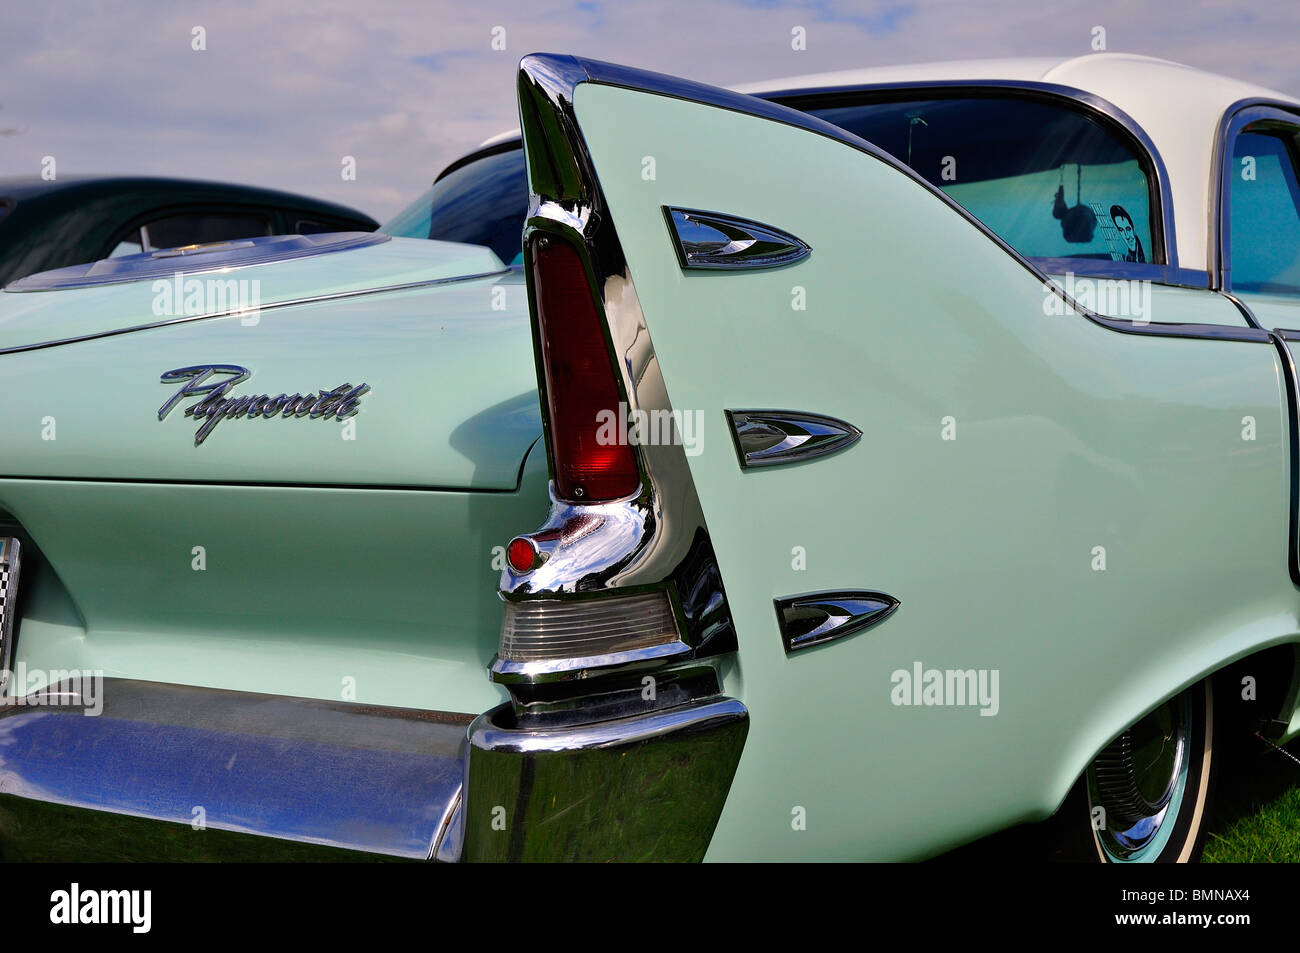 Plymouth Car Stock Photos Amp Plymouth Car Stock Images Alamy